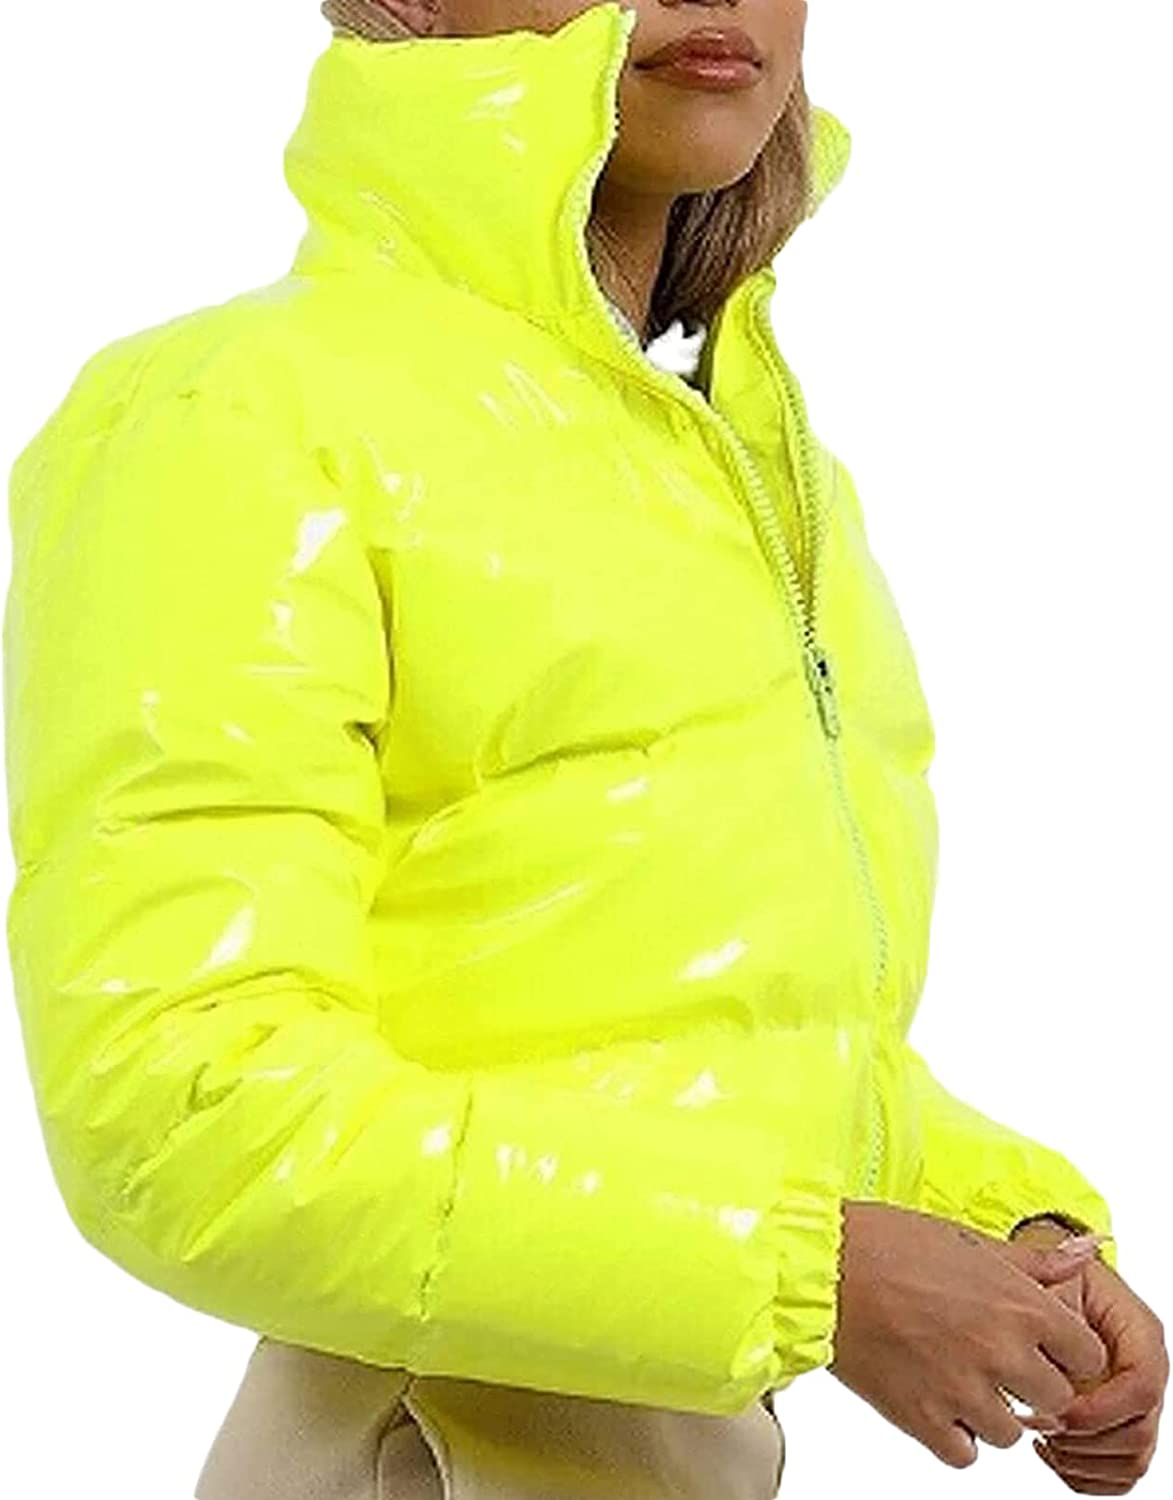 Women's Lightweight Puffer Cropped Jacket Casual Long Sleeve Solid Color Zip Up Baggy Winter Warm Short Coat